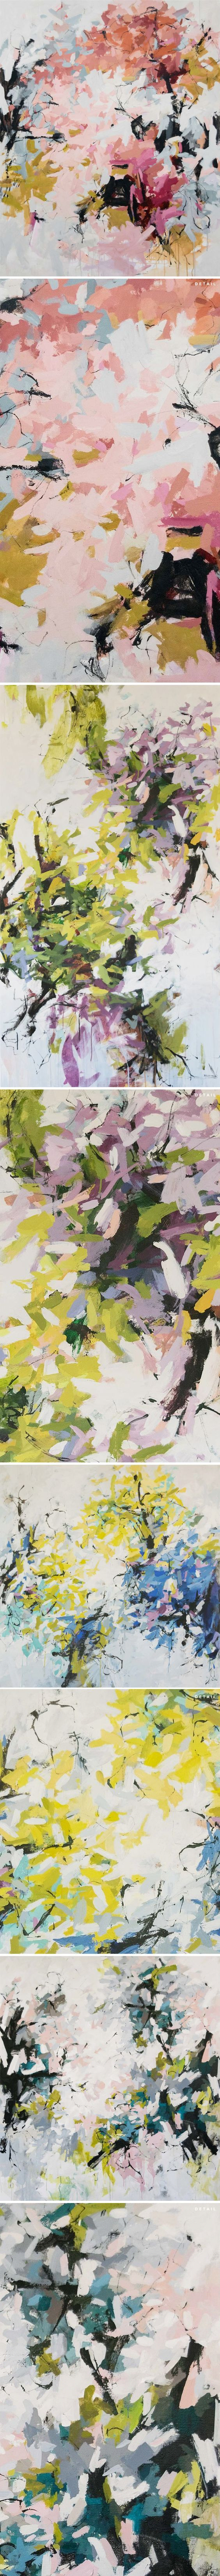 large-scale floral abstracts carlos ramirez: